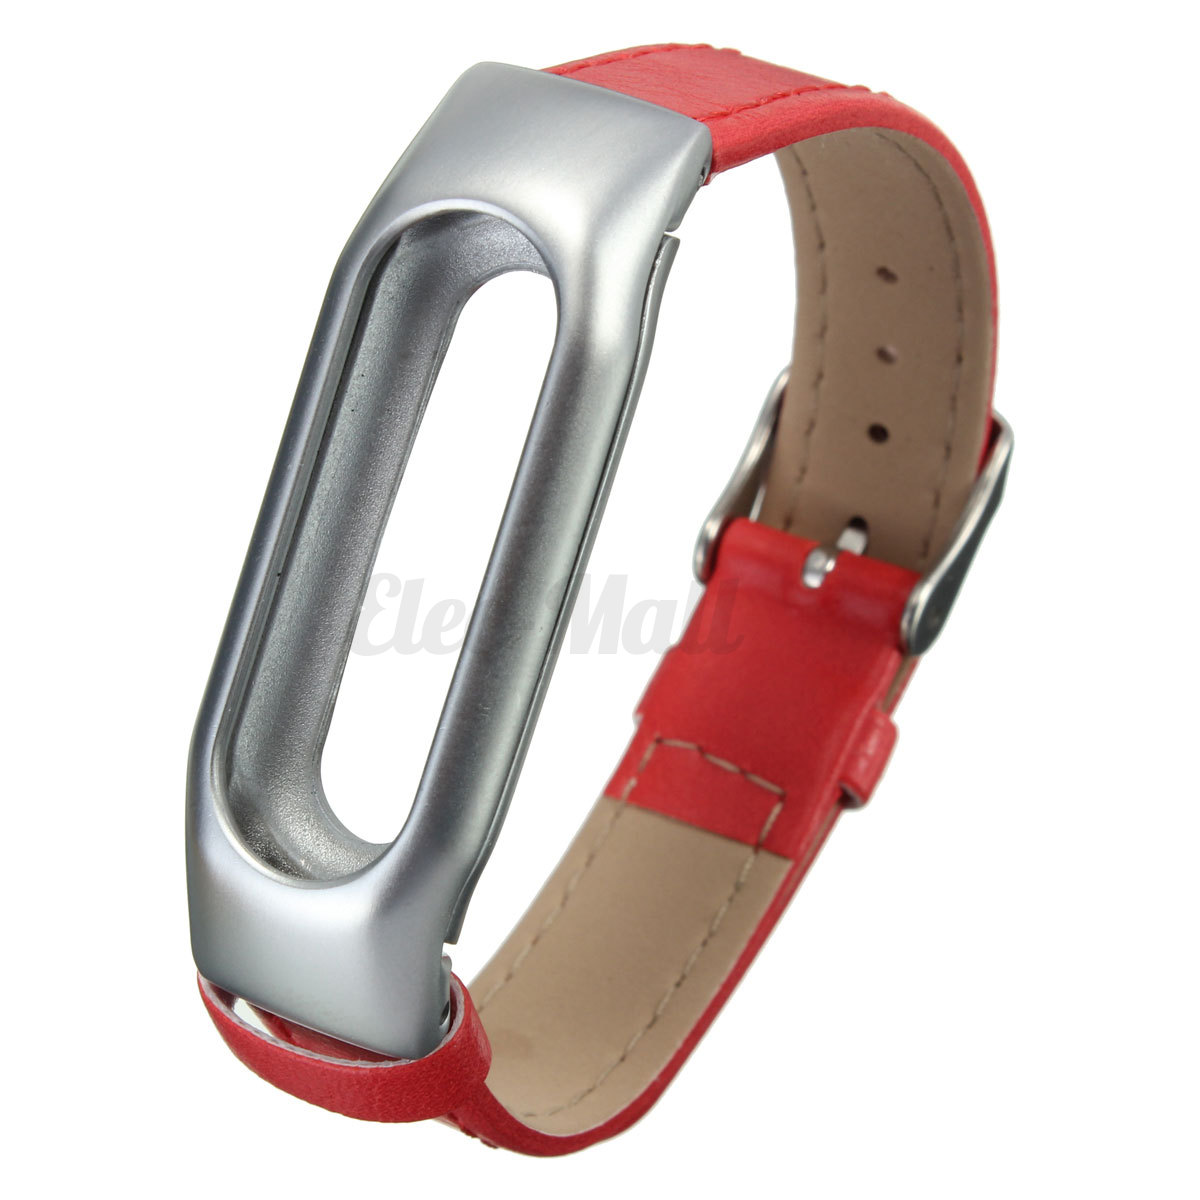 Genuine Leather Replacement Smart Wristband Strap Bracelet For Xiaomi Mi Band 1S